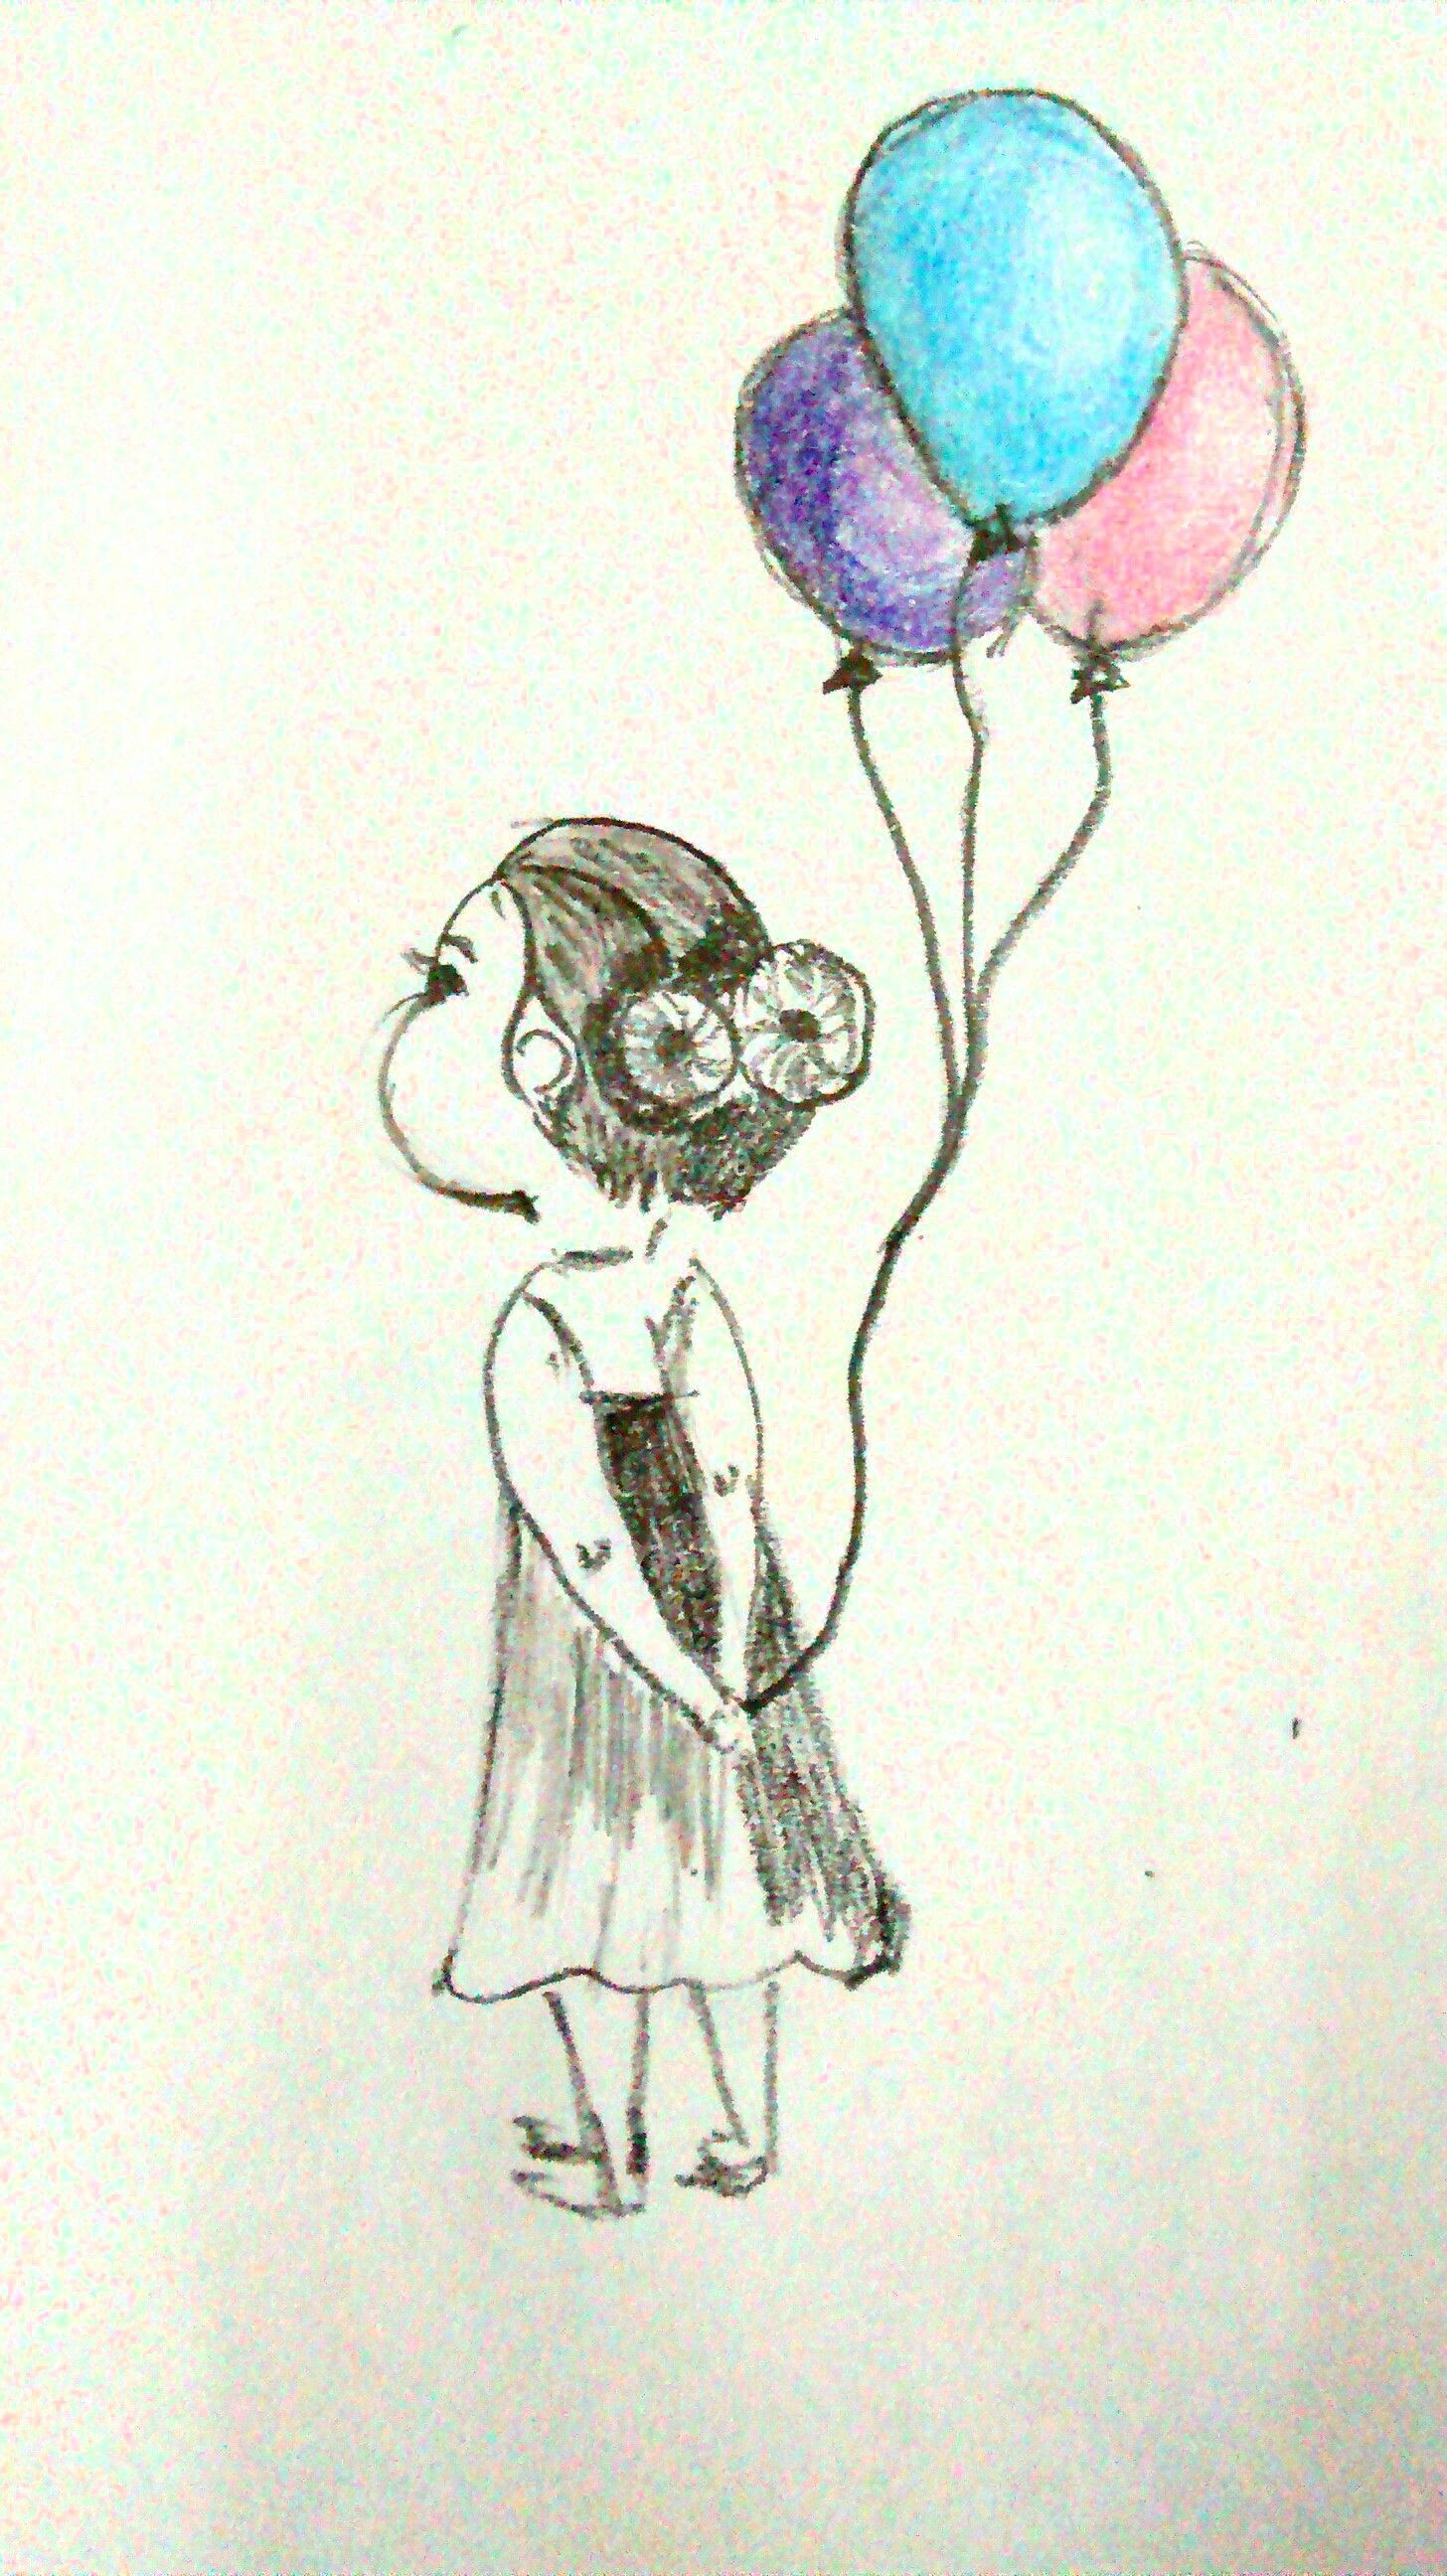 Balloons colors pencil sketches fine art artist in